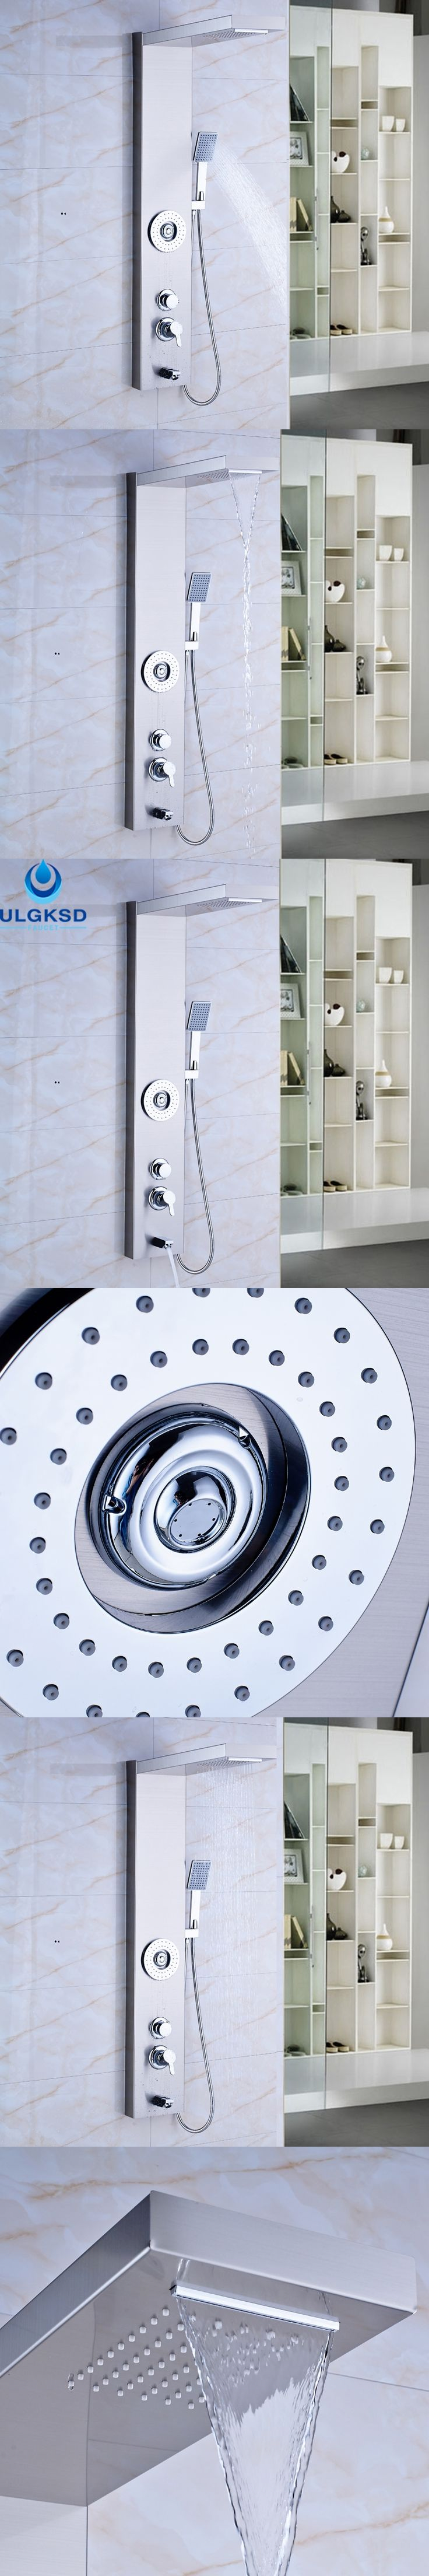 22 best Shower panels and exposed wall showers images on Pinterest ...